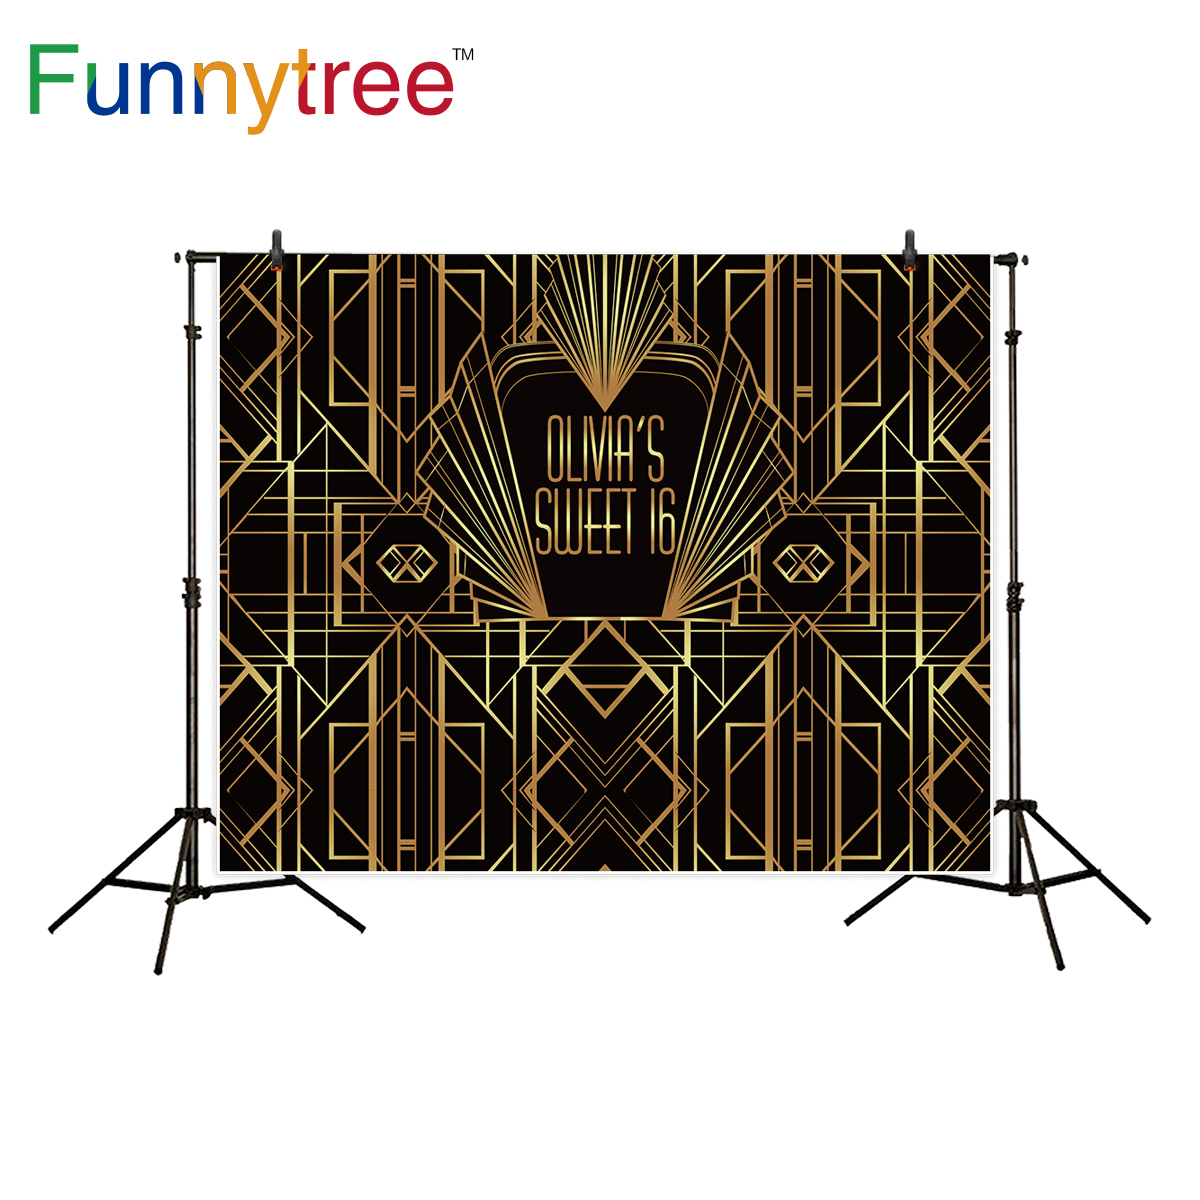 Funnytree great Gatsby backdrop for photography studio sweet birthday table decor black gold background photocall photobooth fitzgerald f the great gatsby stage 5 сd